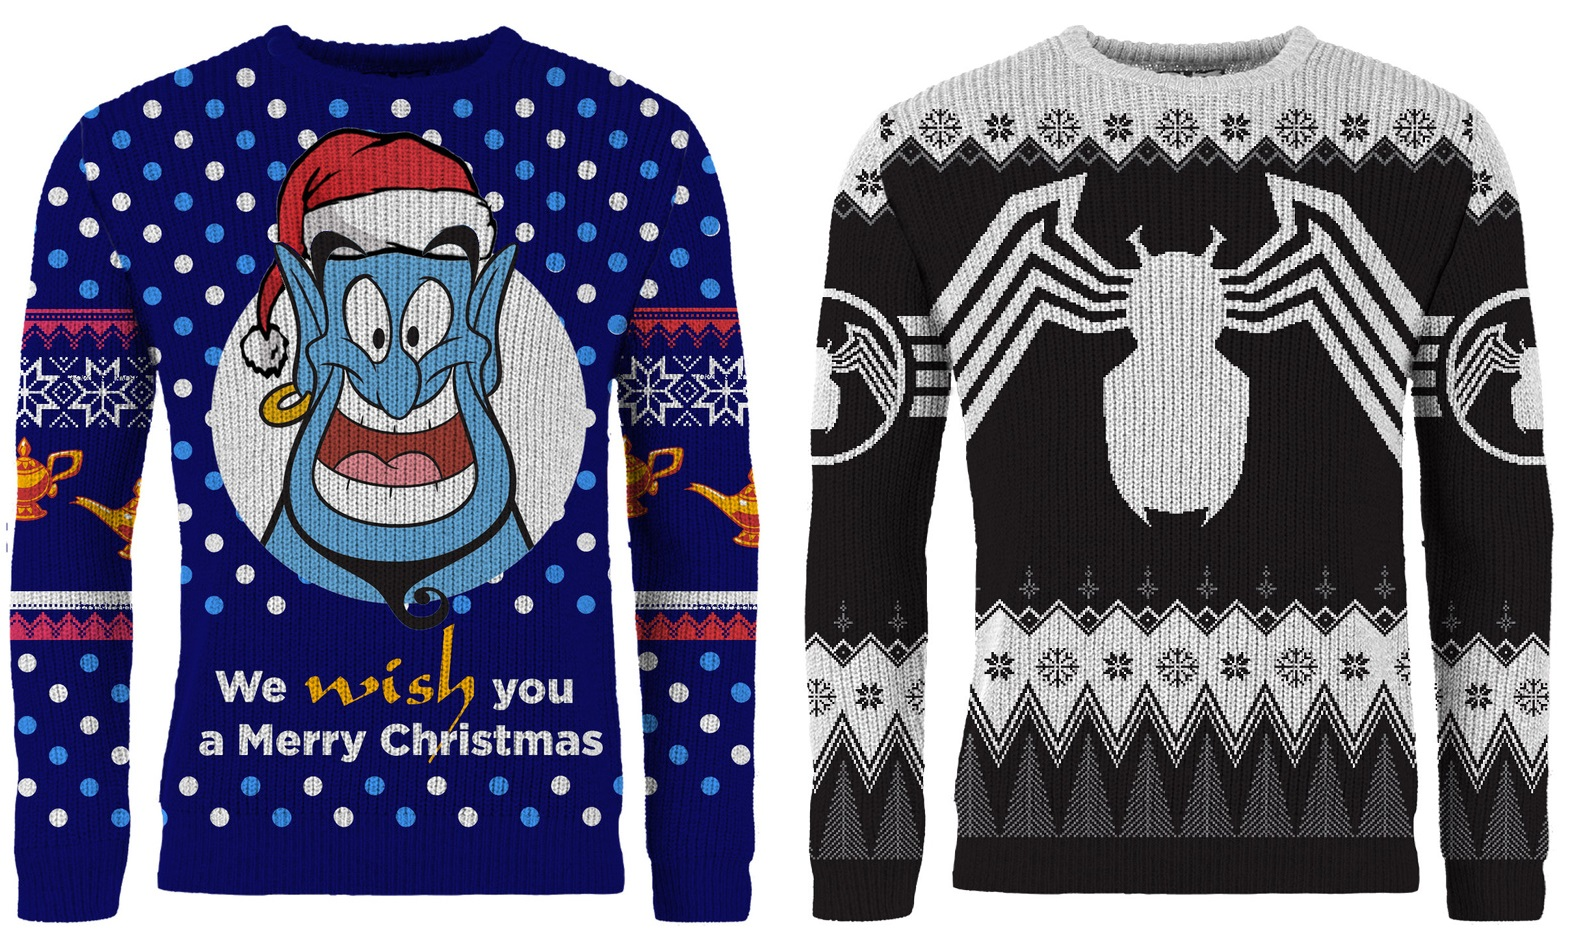 390bcd9d0c4 Get ready for the holidays with Venom and Genie ugly sweaters - Nerd ...